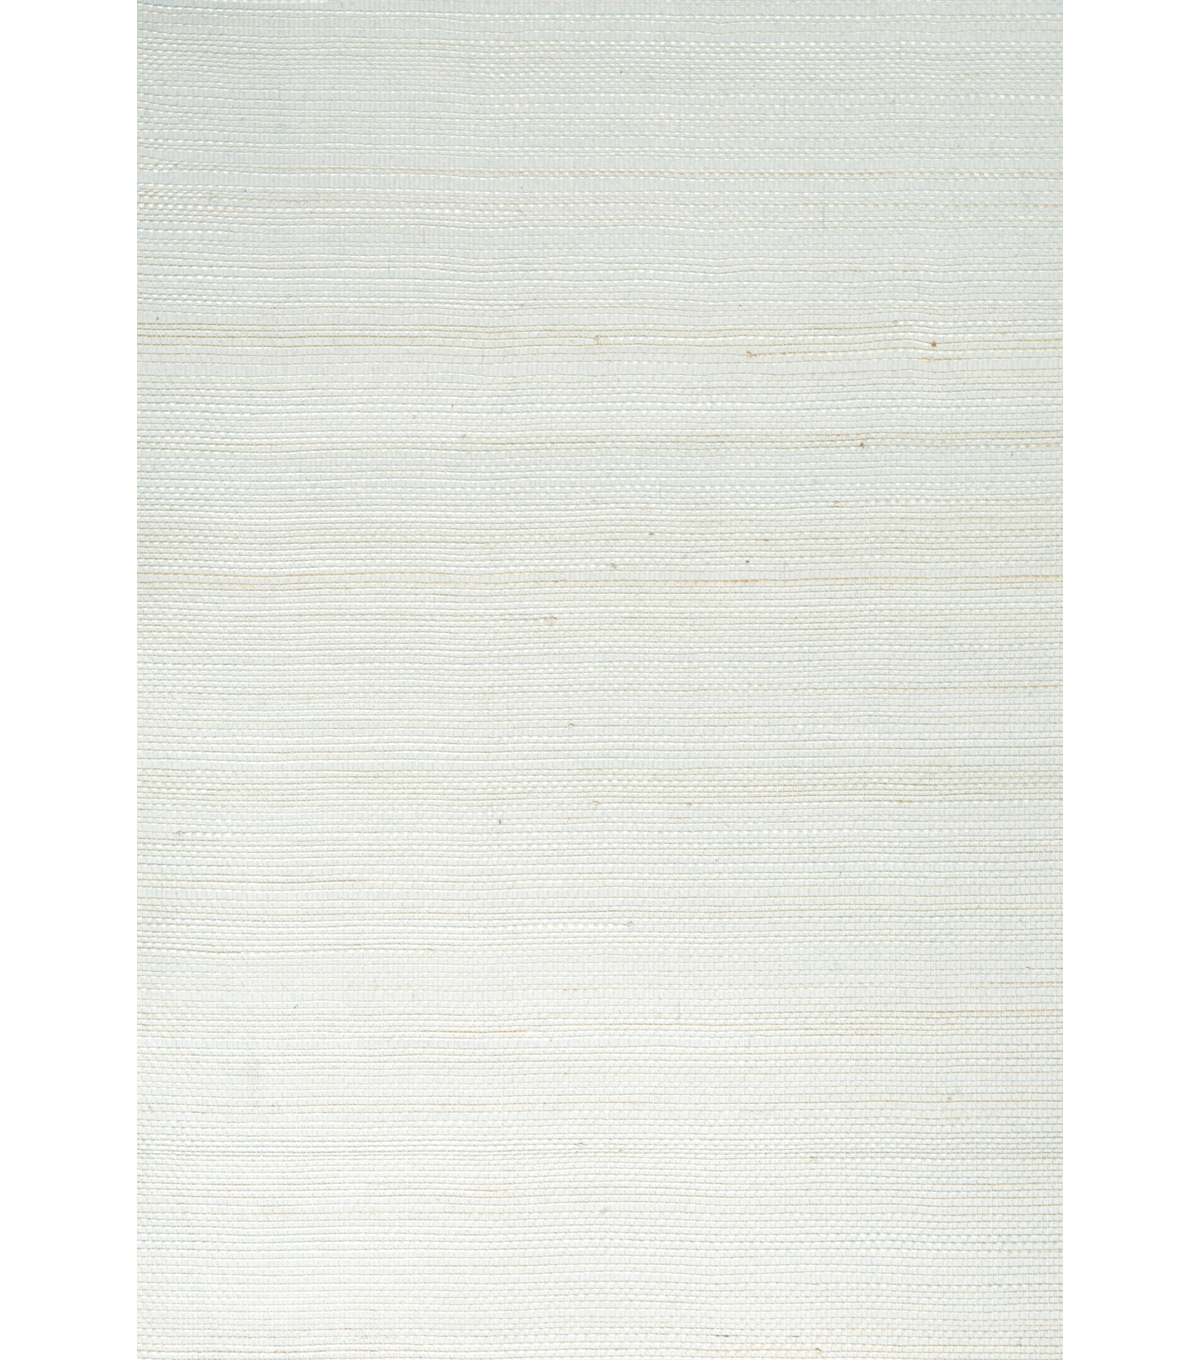 Hanami Light Green Grasscloth Wallpaper Sample